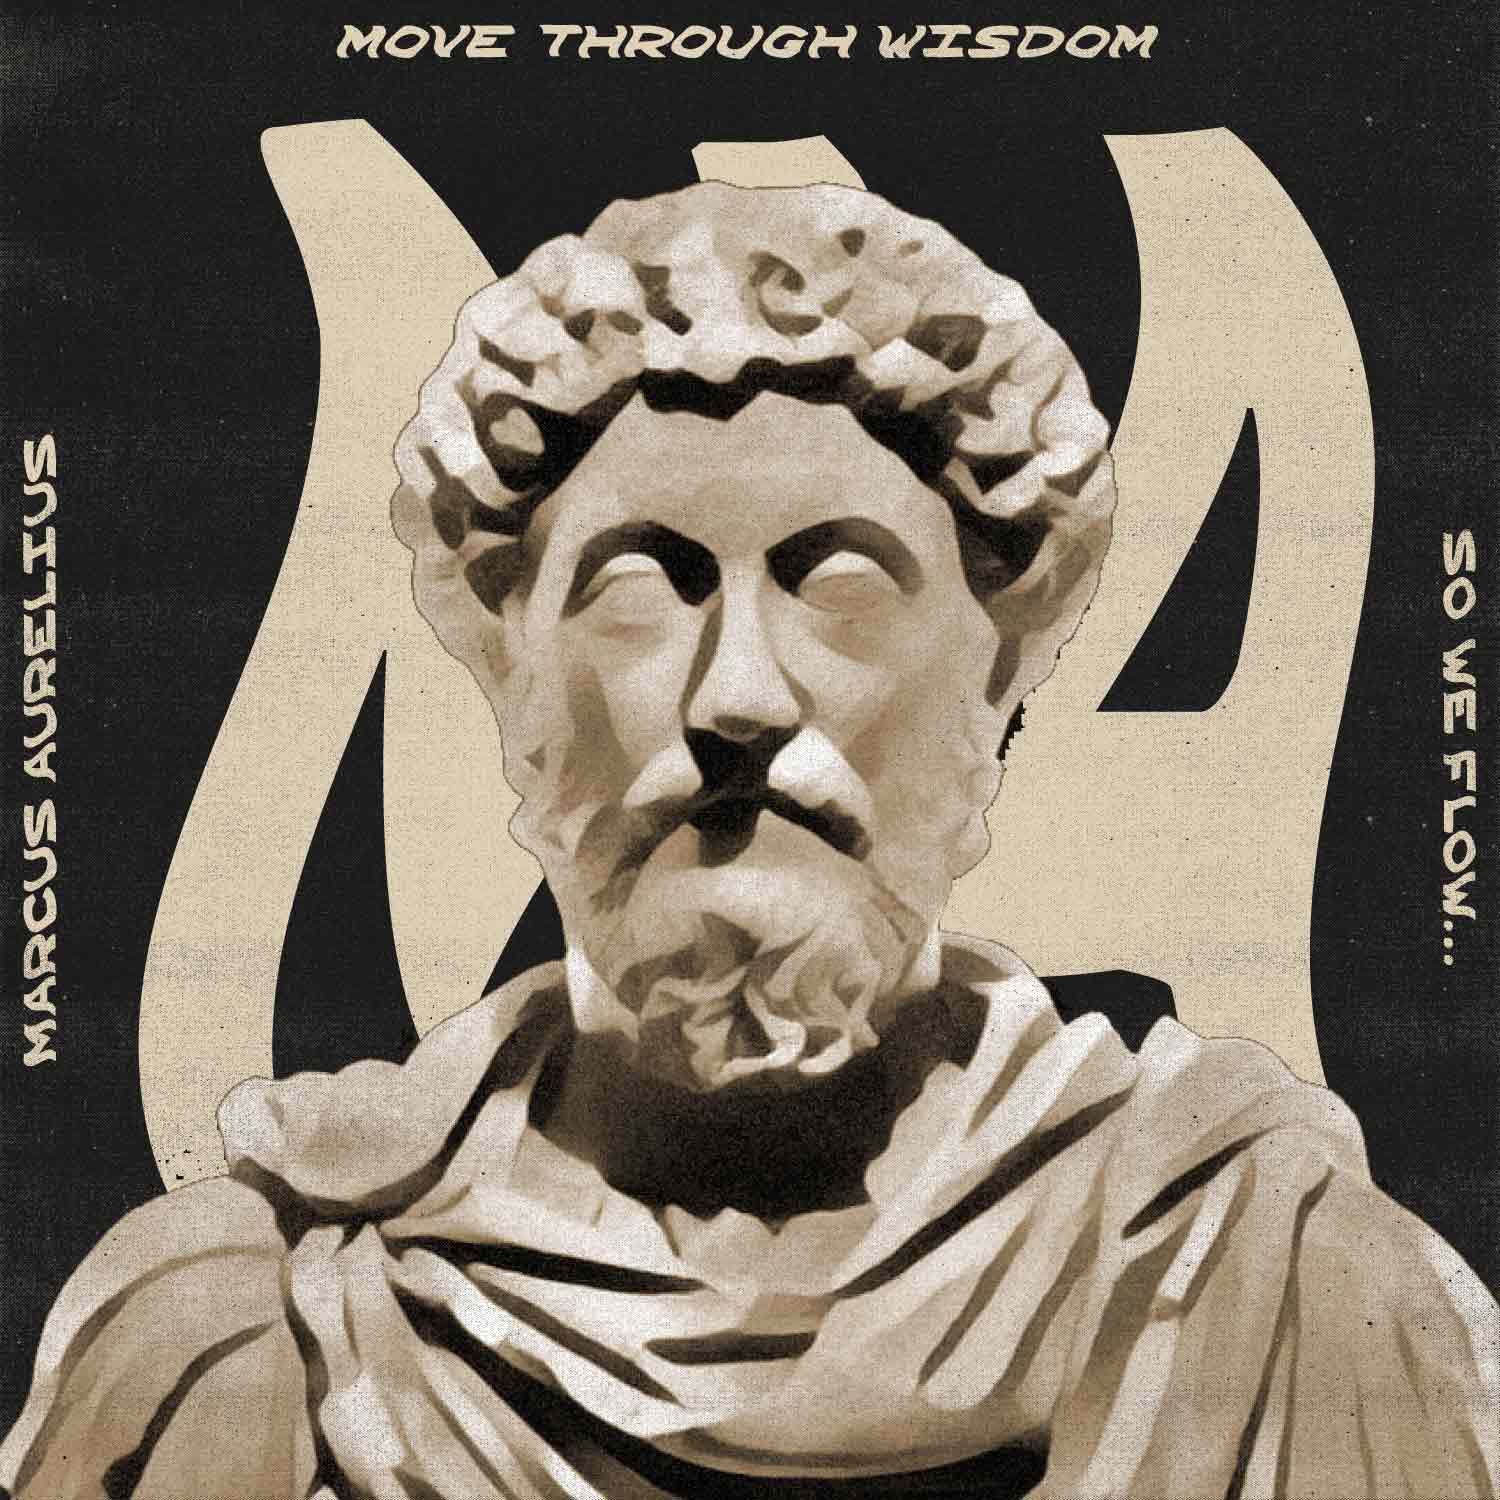 So We Flow... Move Through Wisdom - Marcus Aurelius artwork